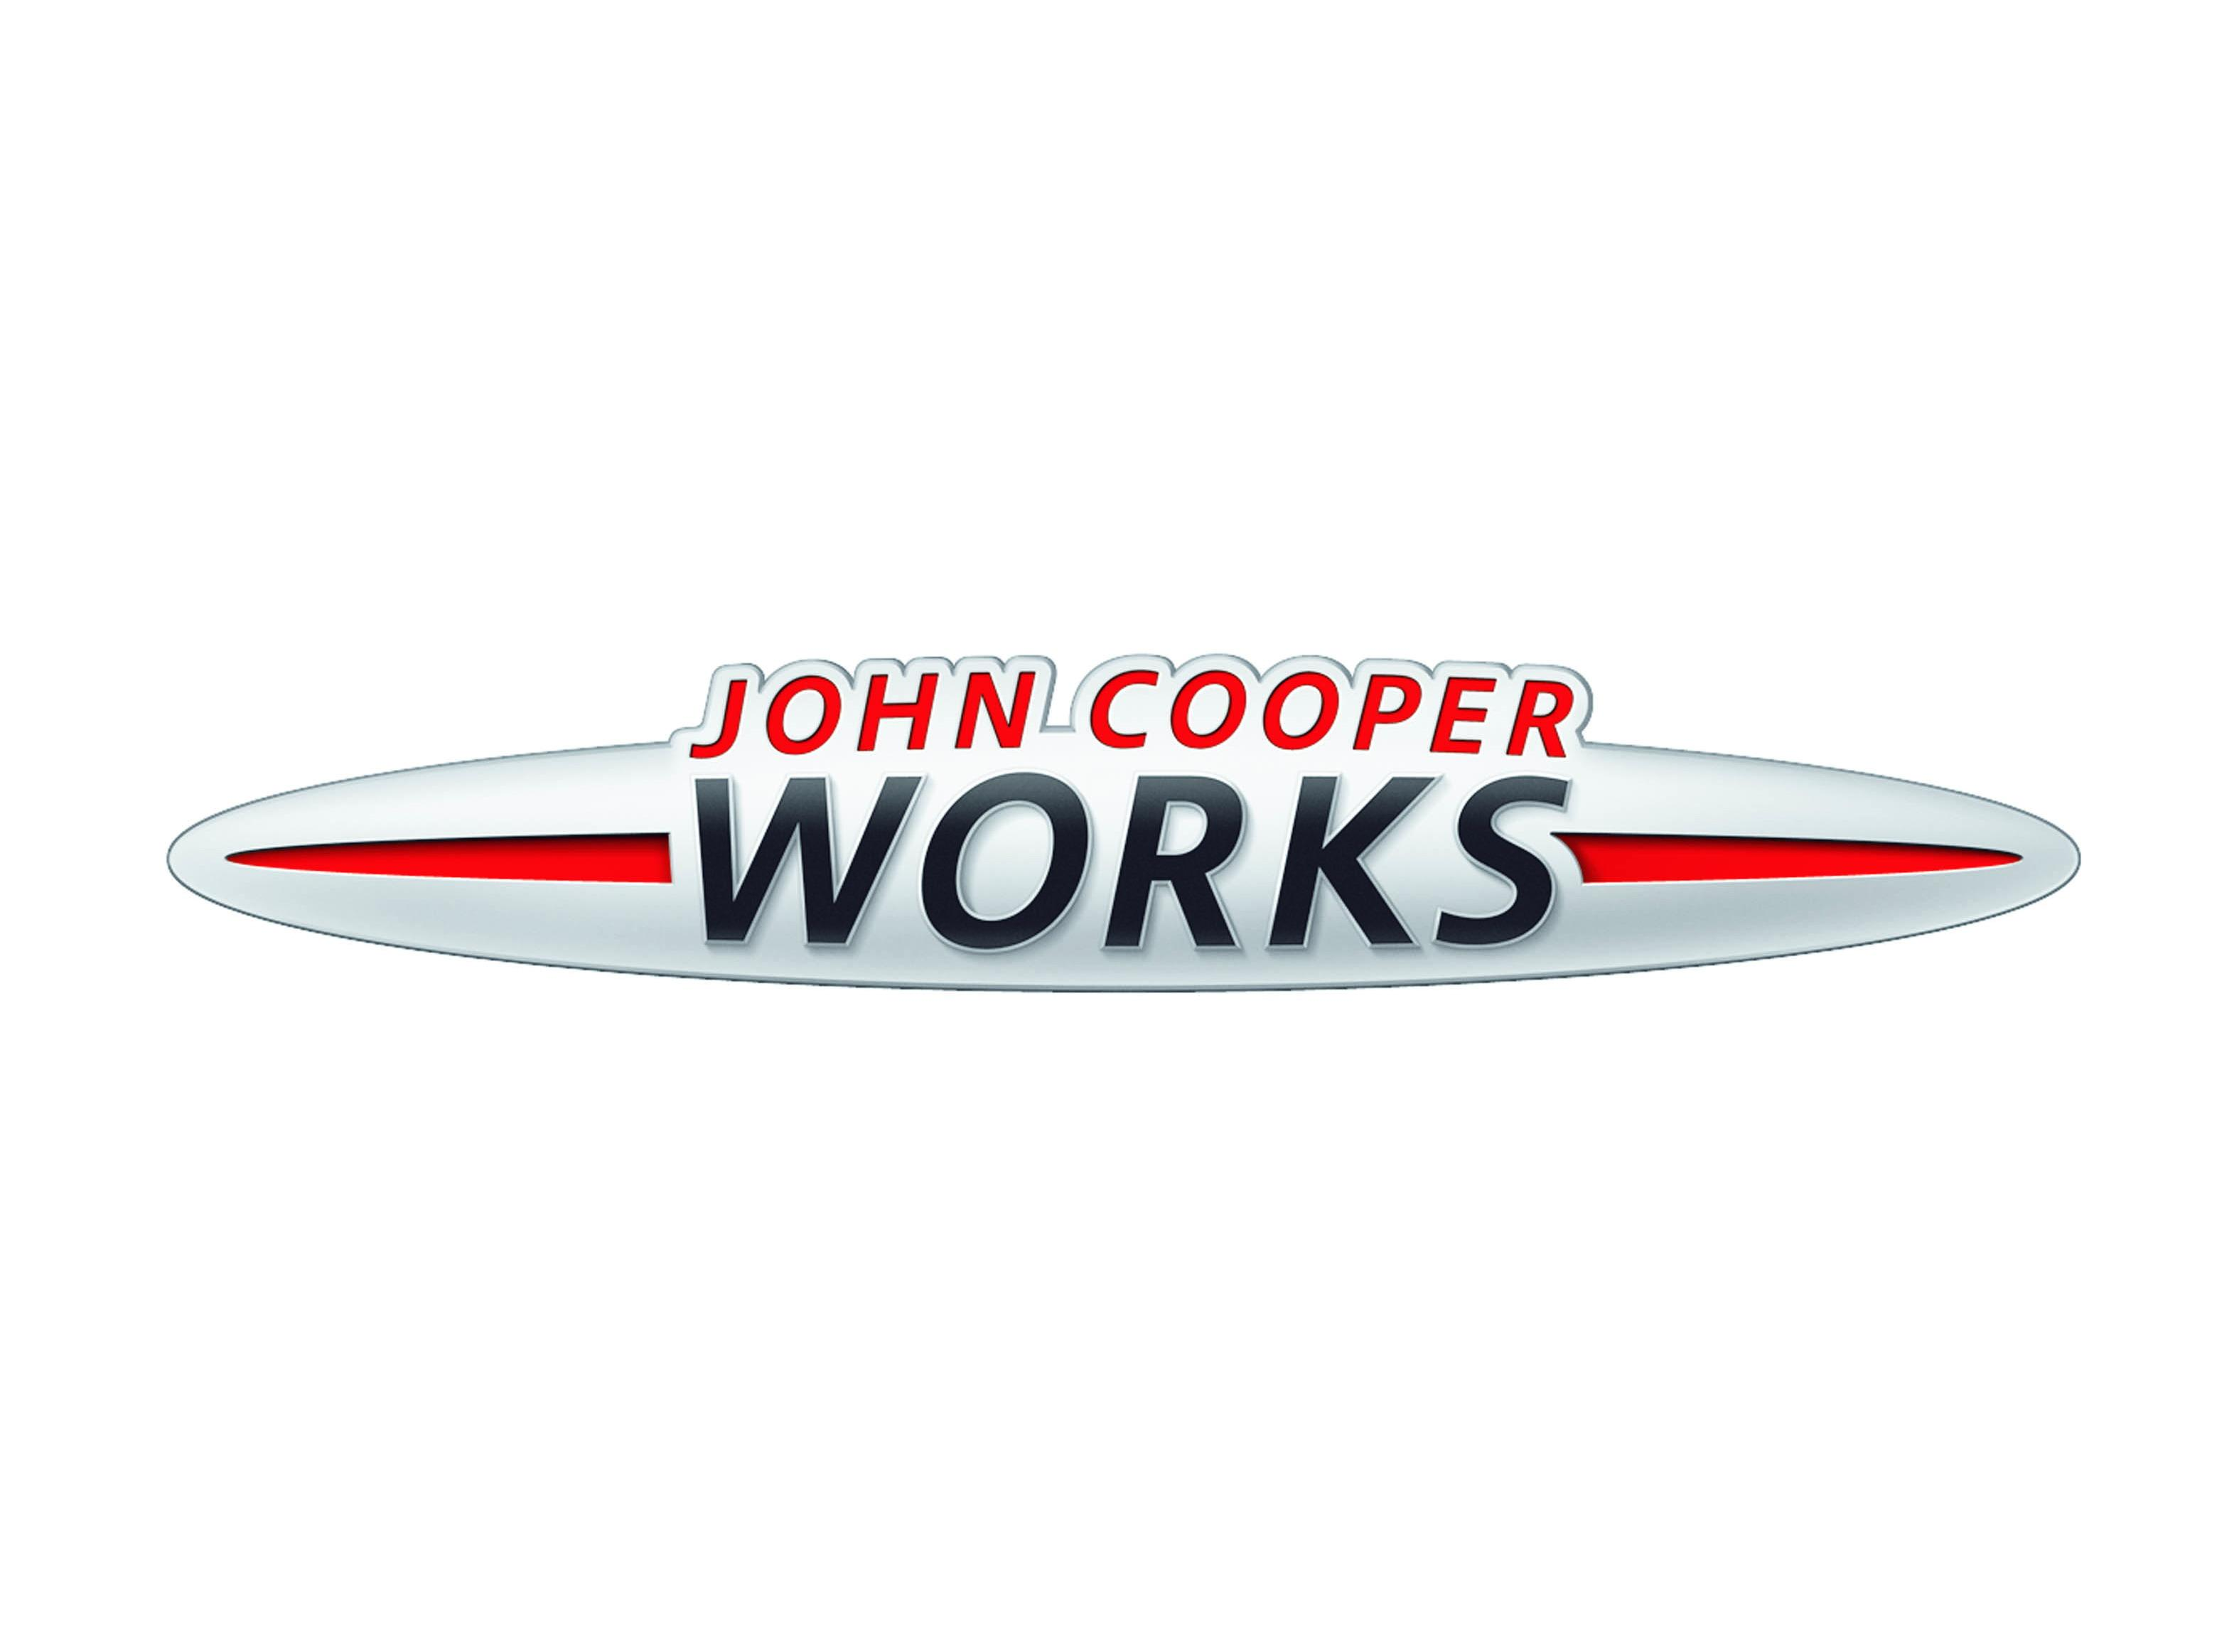 John Cooper Works Launched New Brand Identity Top Speed